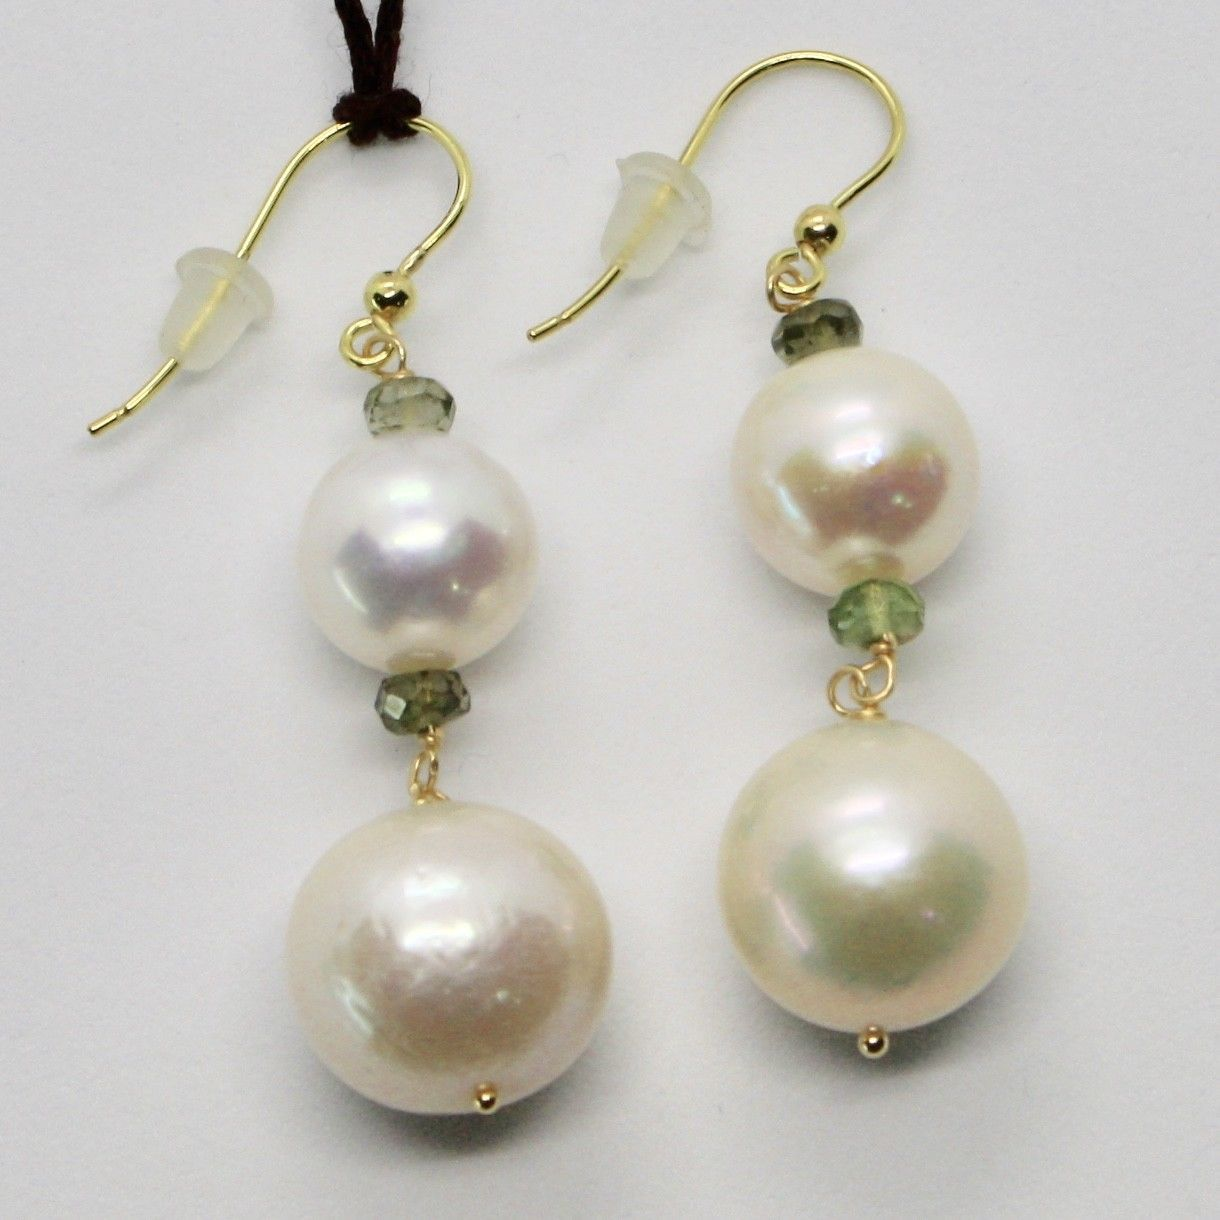 SOLID 18K YELLOW GOLD EARRINGS WITH WHITE PEARL AND TOURMALINE MADE IN ITALY